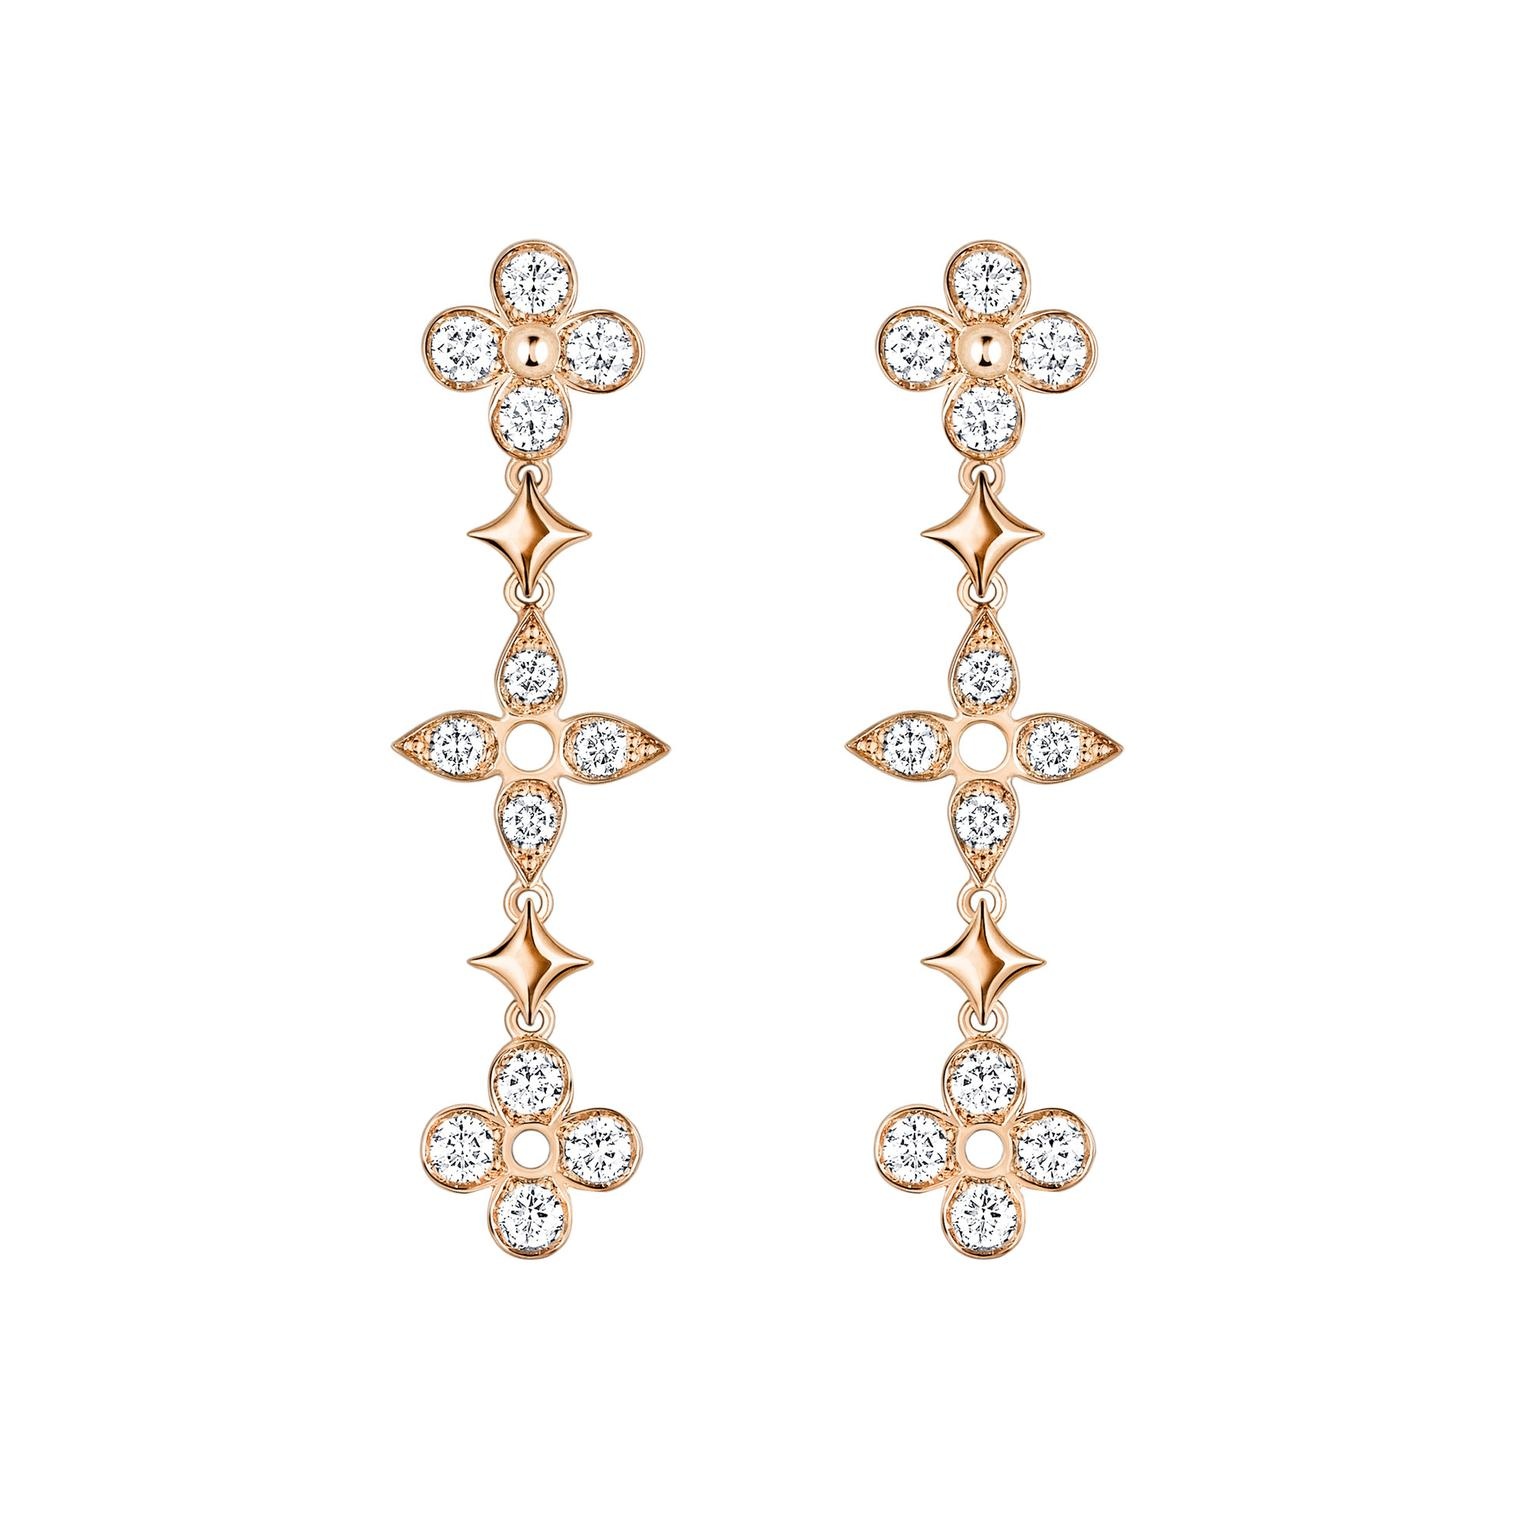 Louis Vuitton Dentelle de Monogram pink gold and diamond earrings